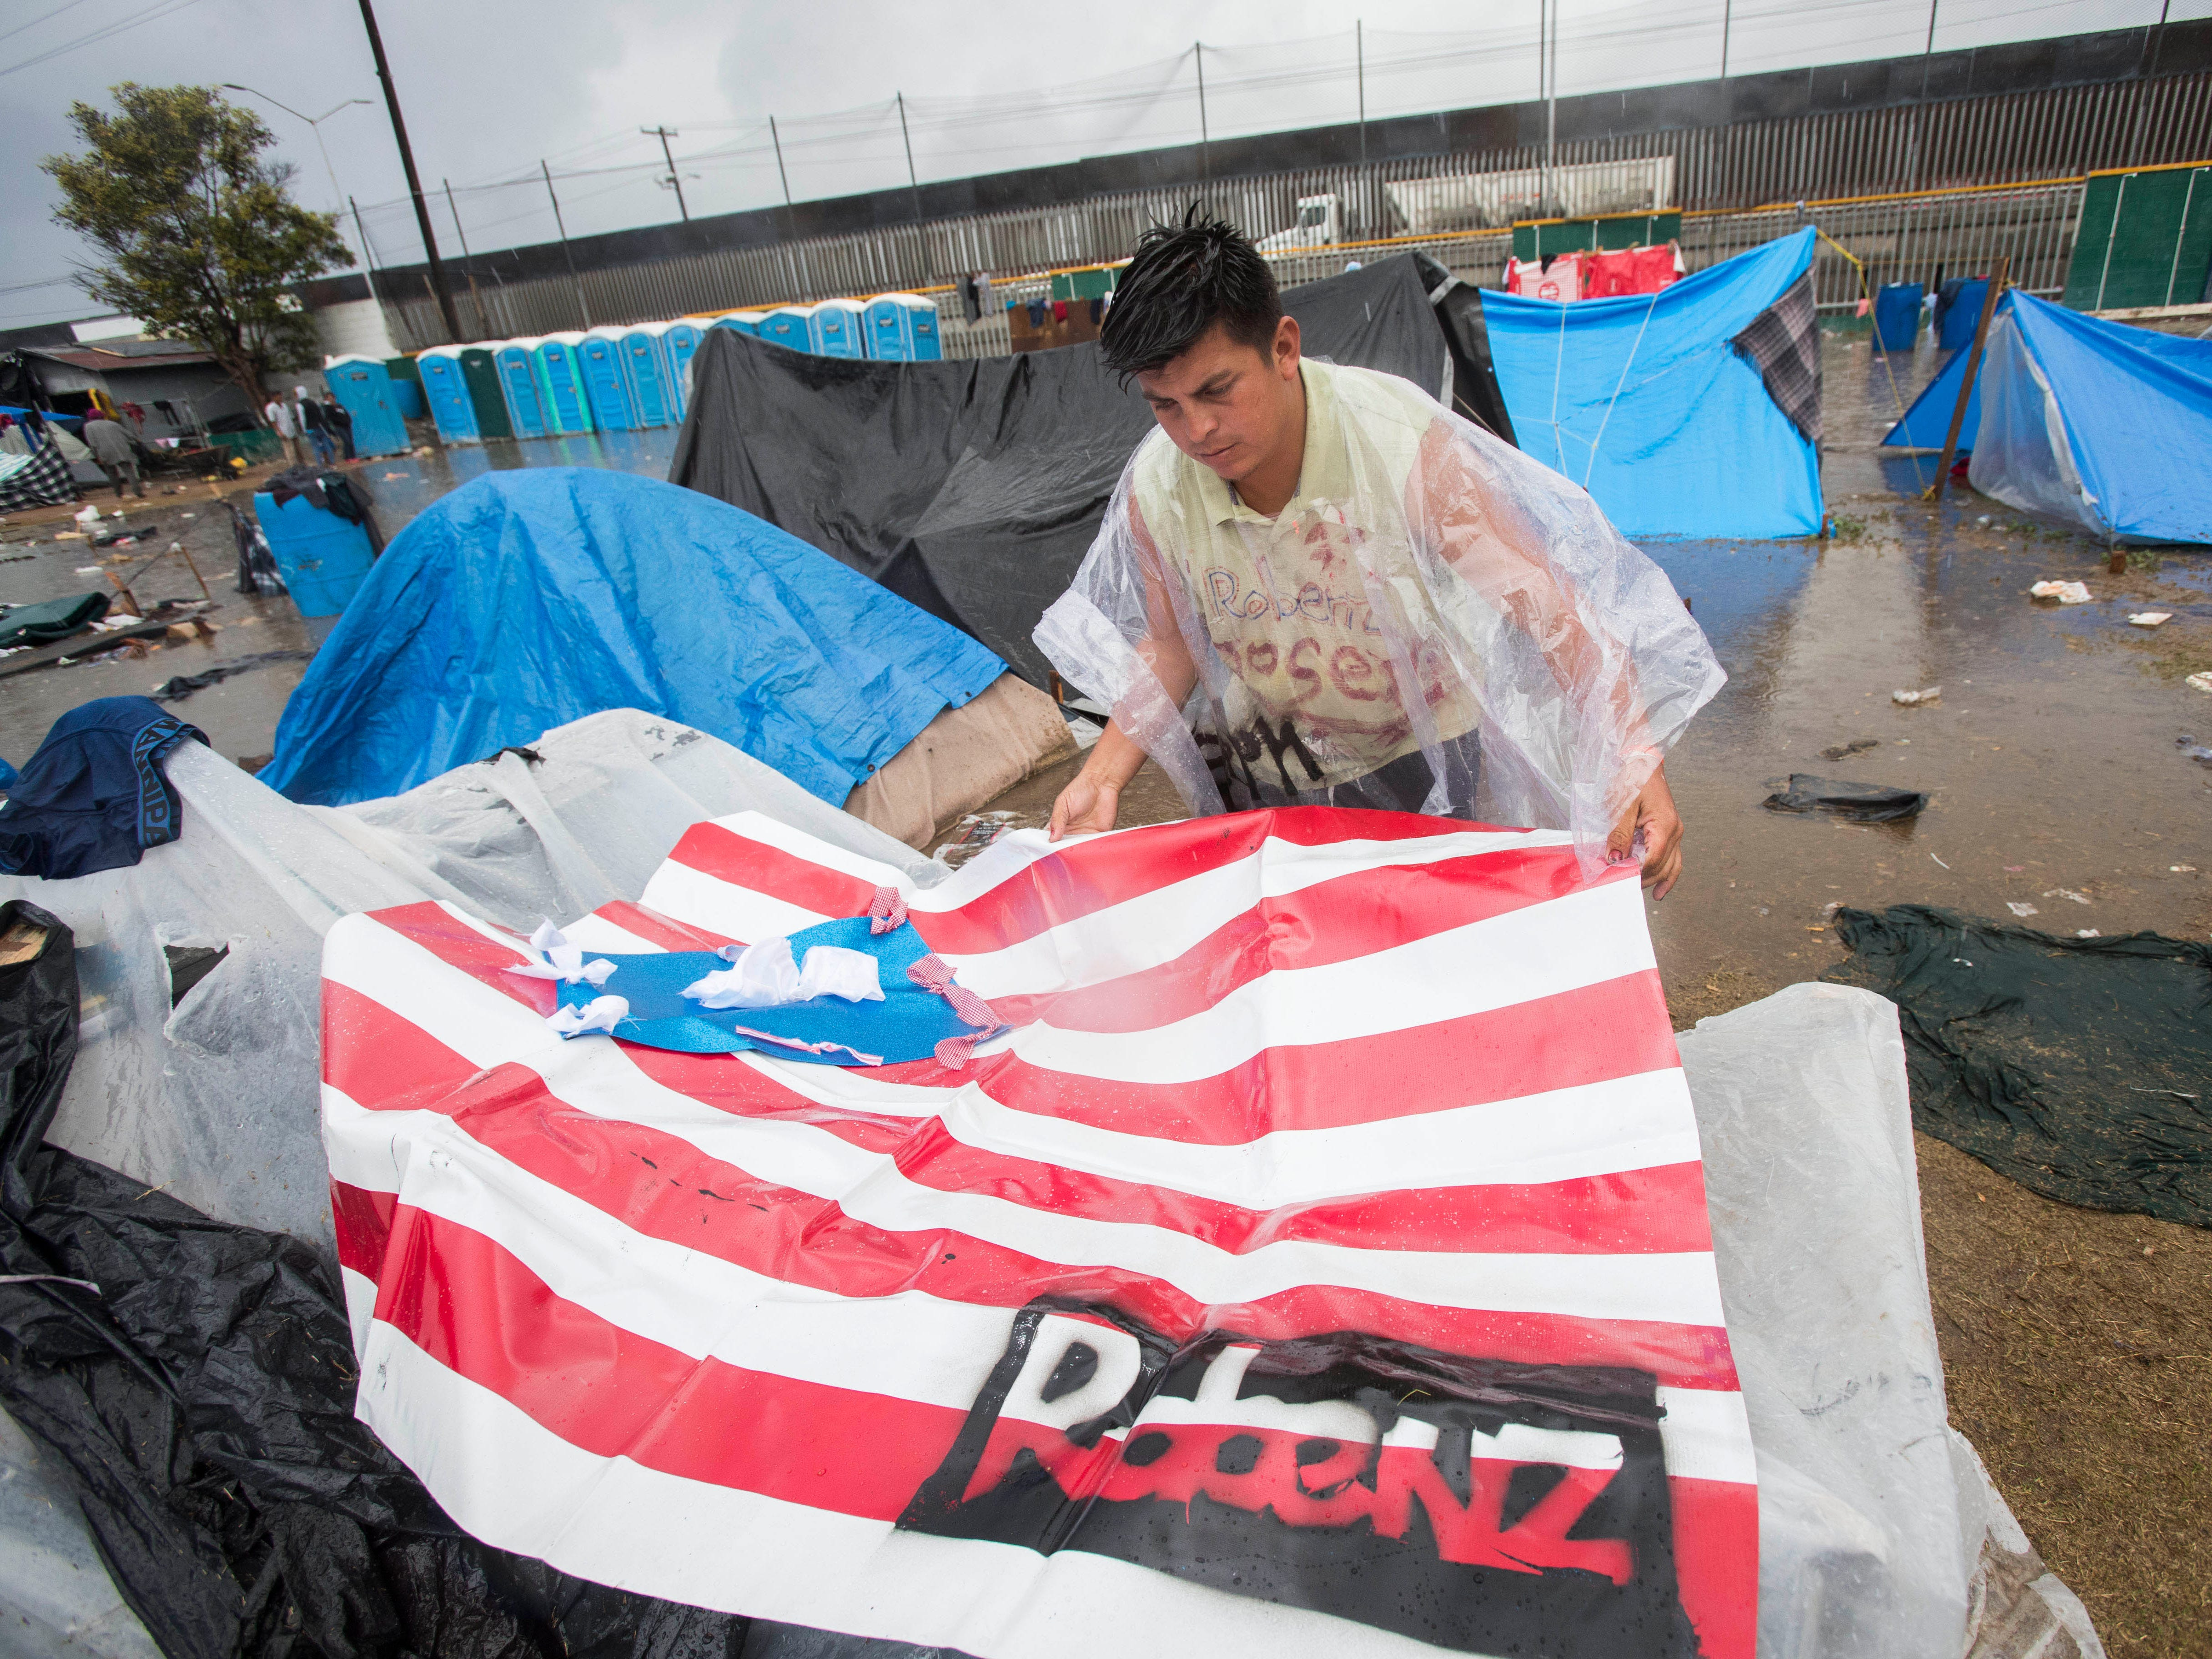 A migrant man uses a tarp to try to prevent more water from entering his tent at the  Benito Juarez sports complex in Tijuana, Mexico on Nov. 29, 2018.